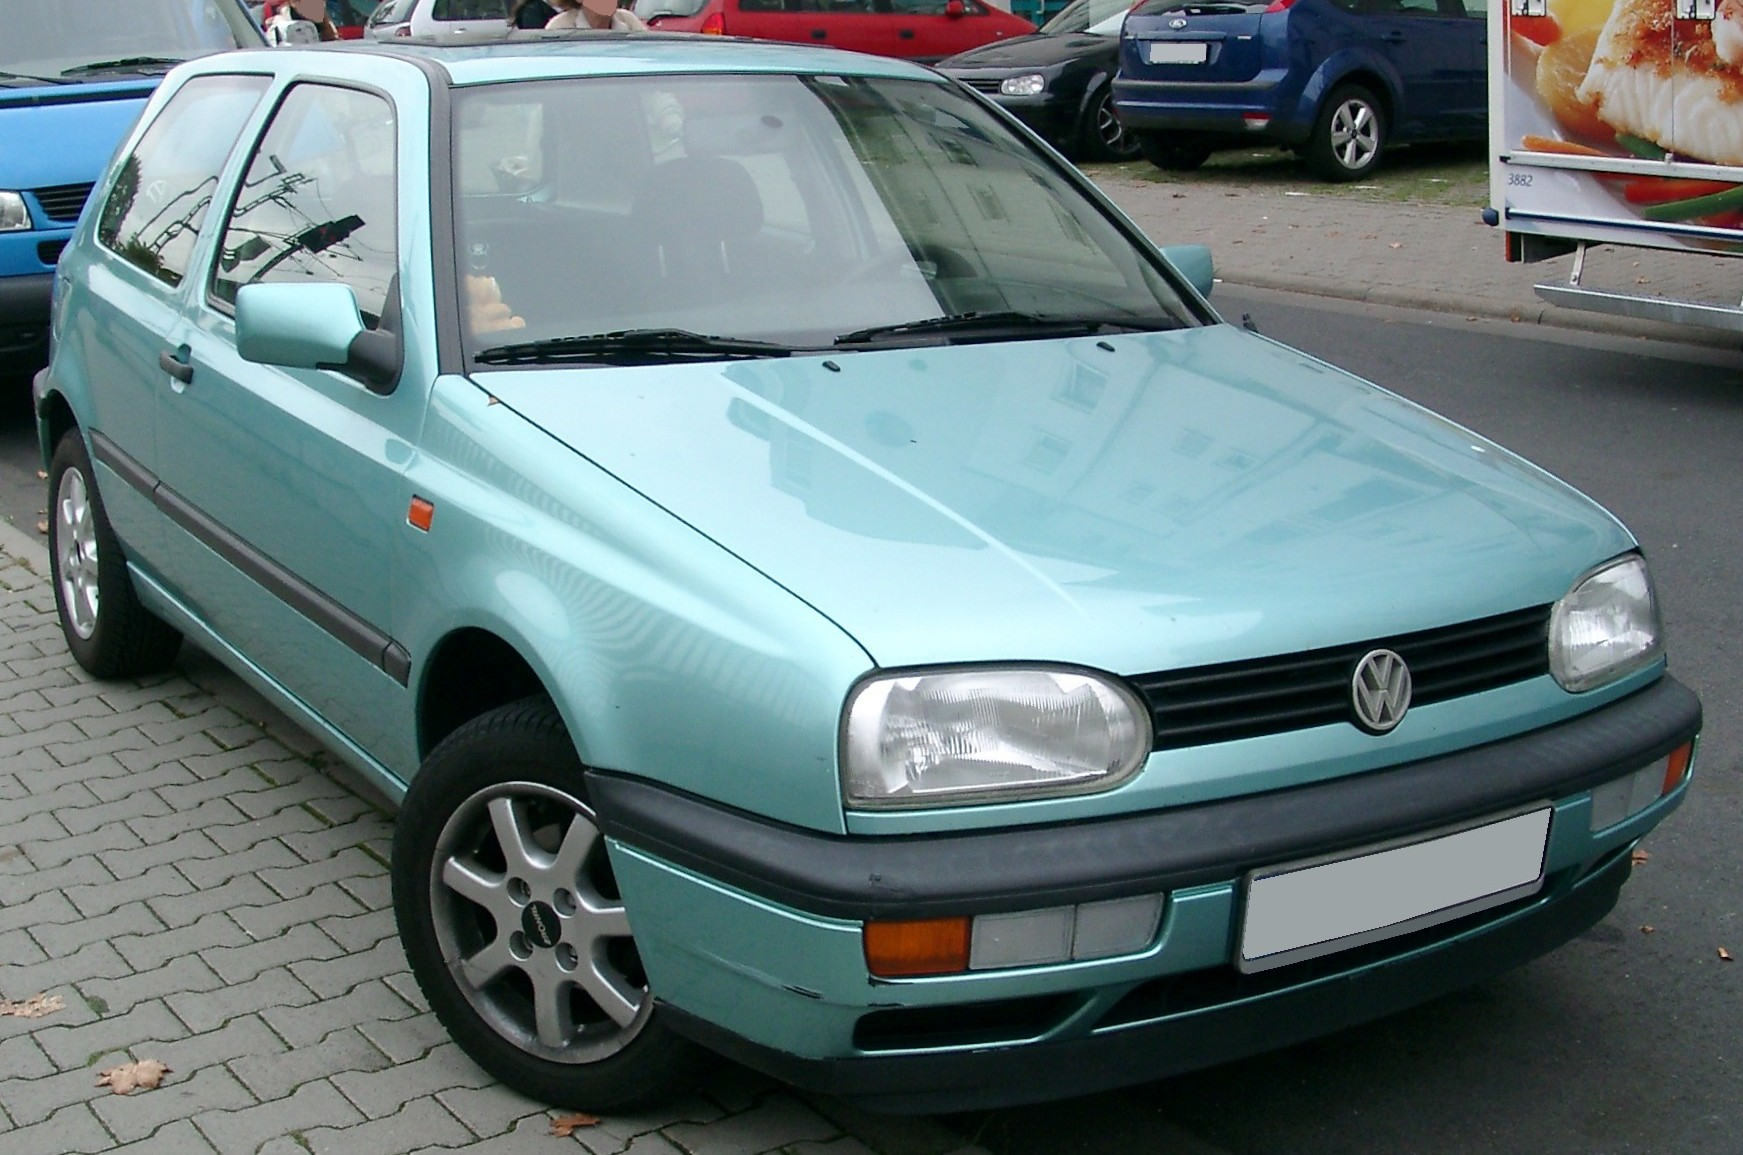 VW Golf 3 technical details, history, photos on Better Parts LTD